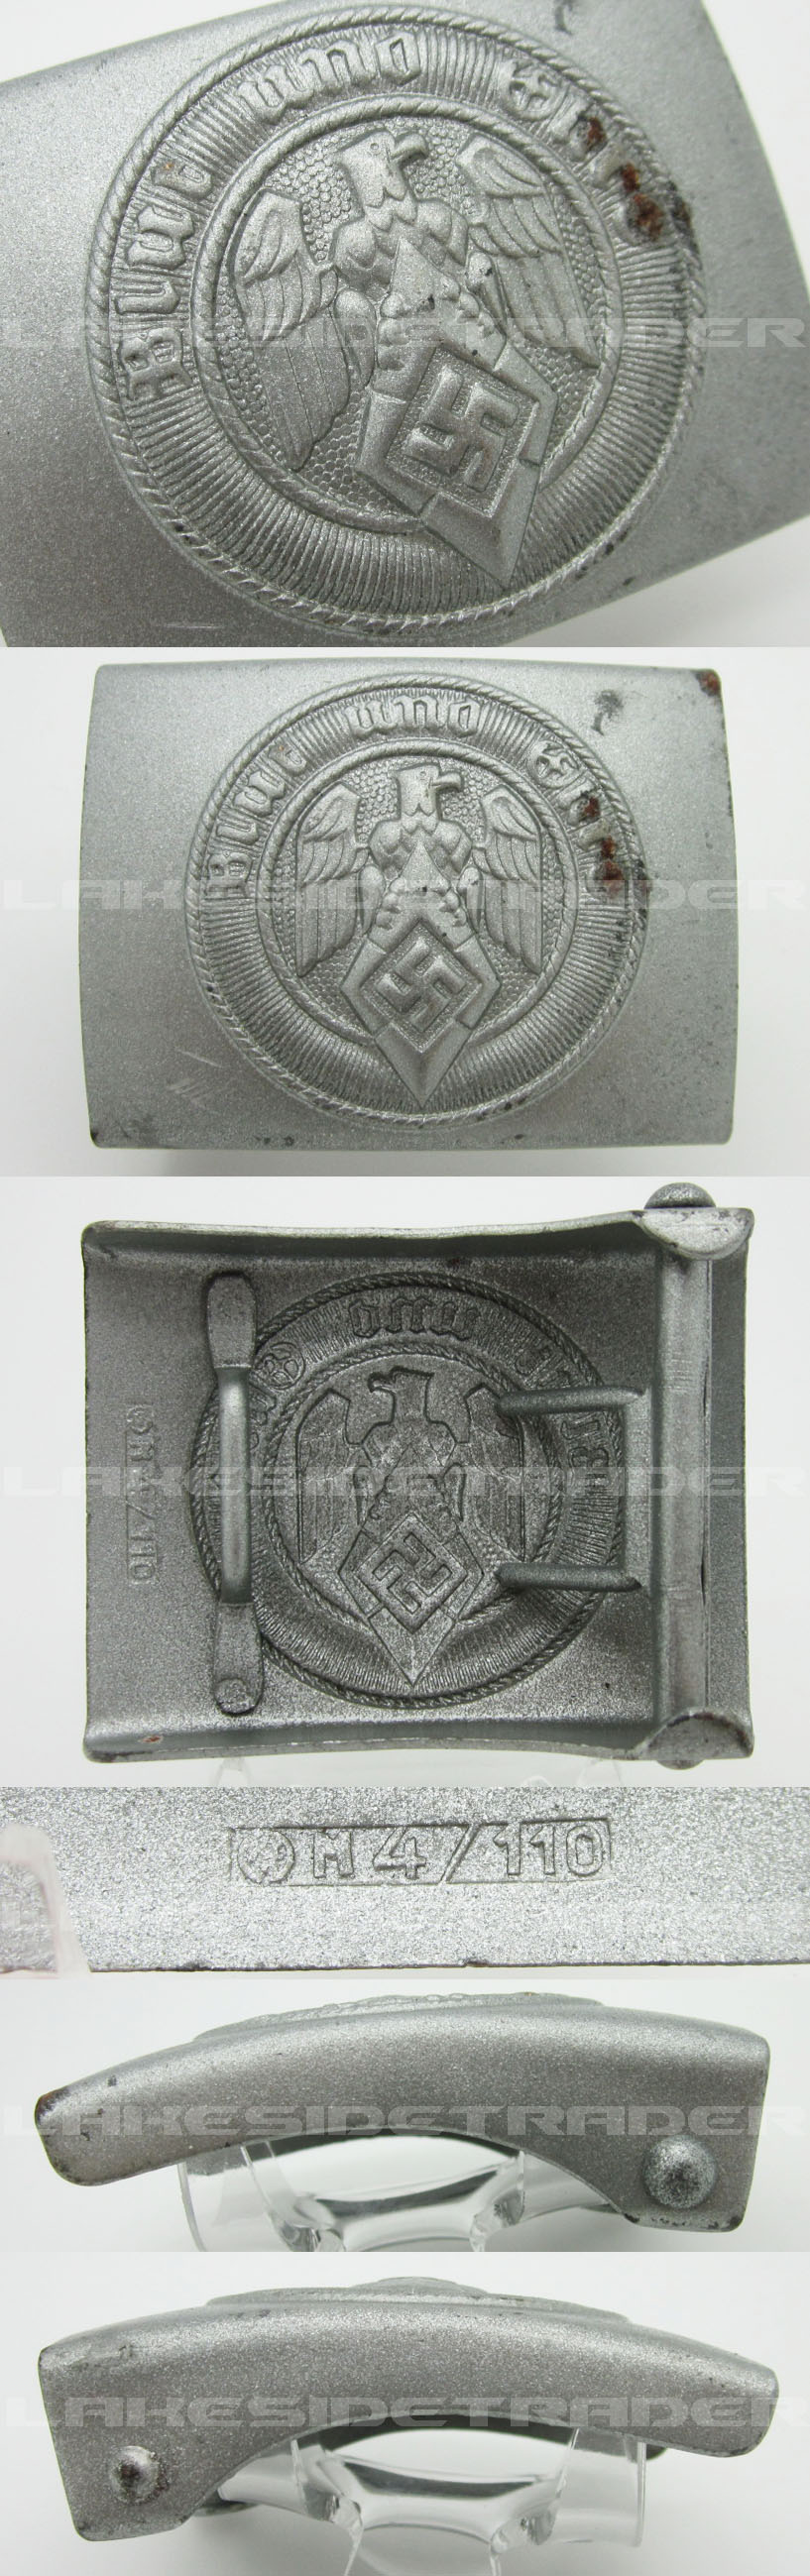 Hitler Youth Belt Buckle by JFS